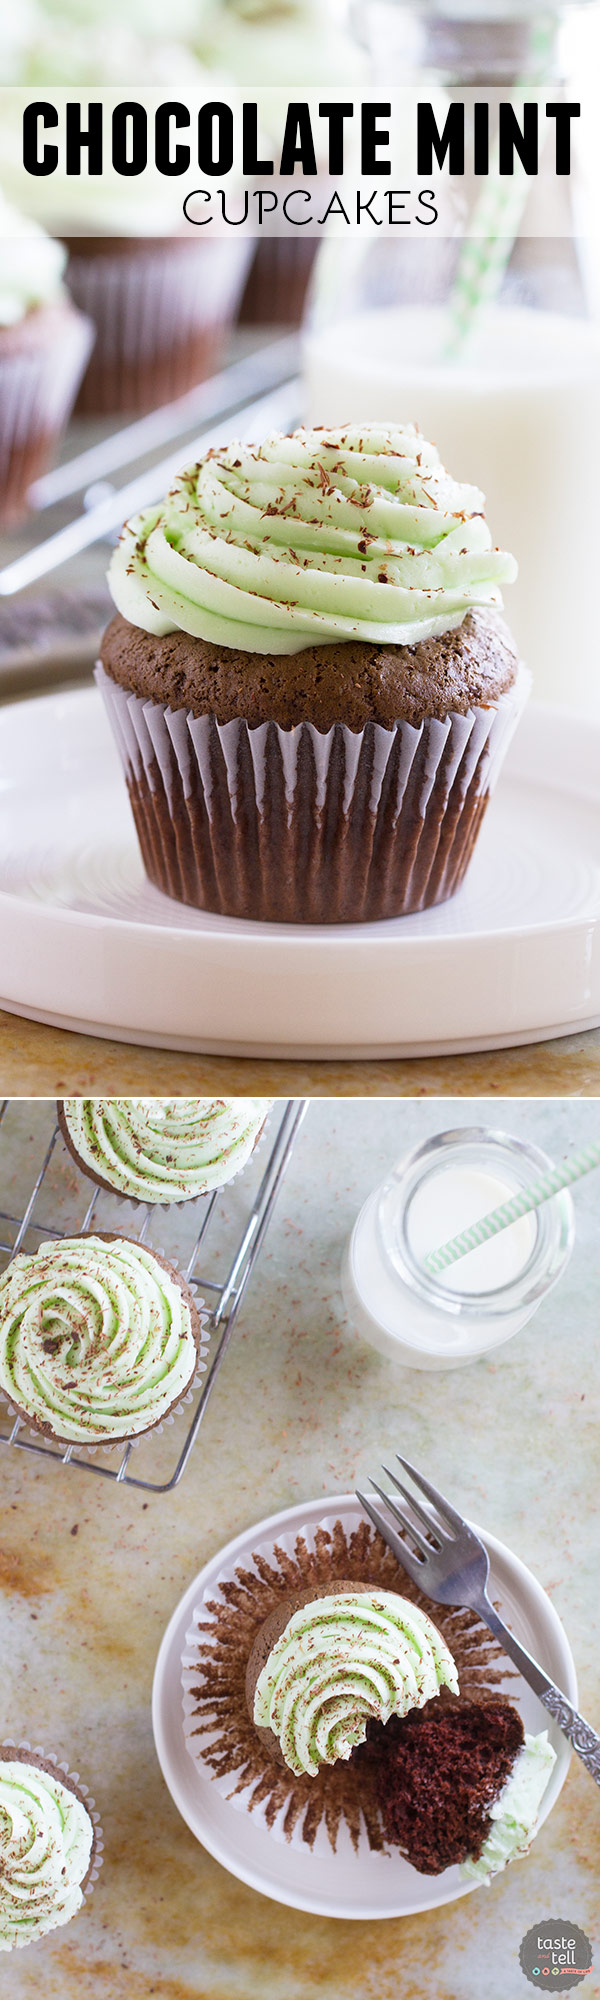 Mint lovers will go crazy for these Chocolate Mint Cupcakes that are topped with a smooth and creamy mint Swiss meringue buttercream frosting.